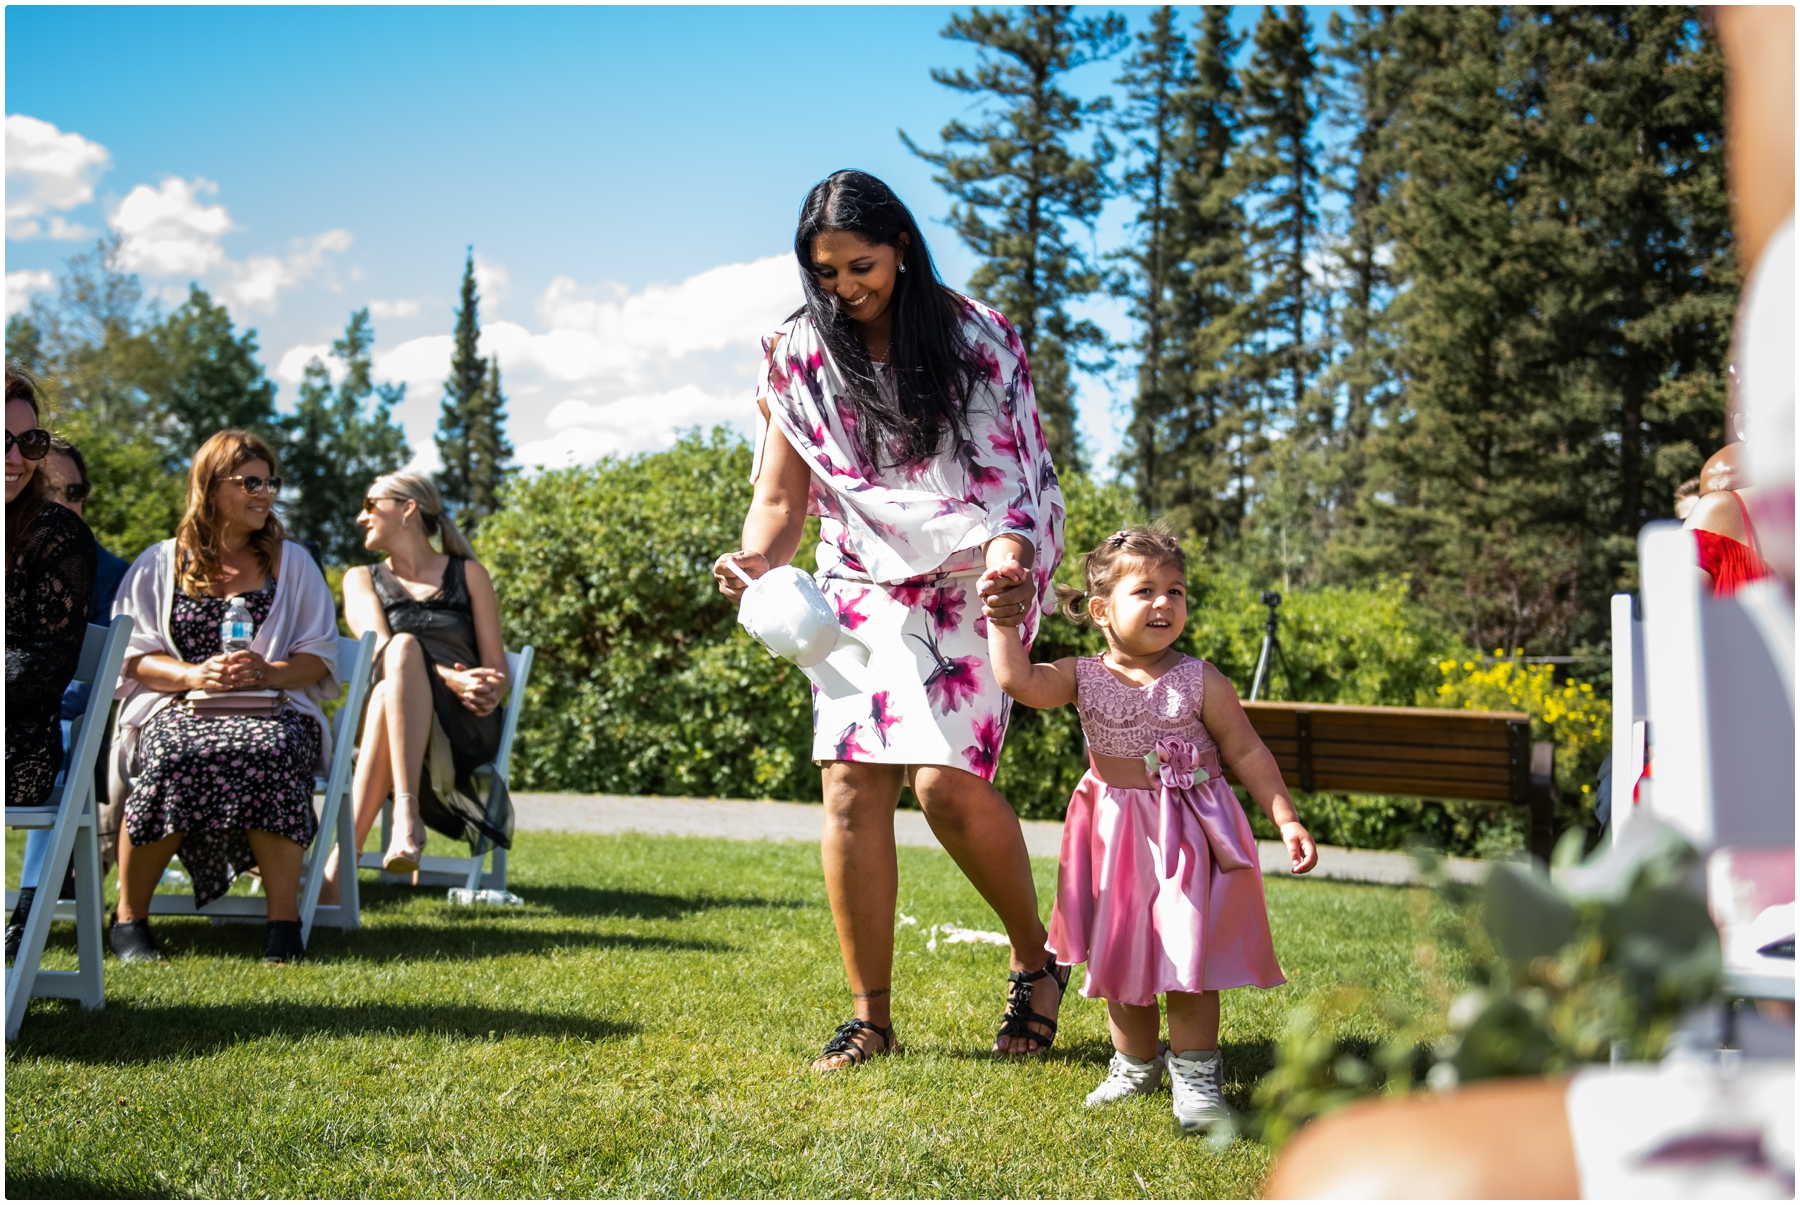 Azuridge Estate Hotel Wedding - Outdoor Wedding Ceremony Photo